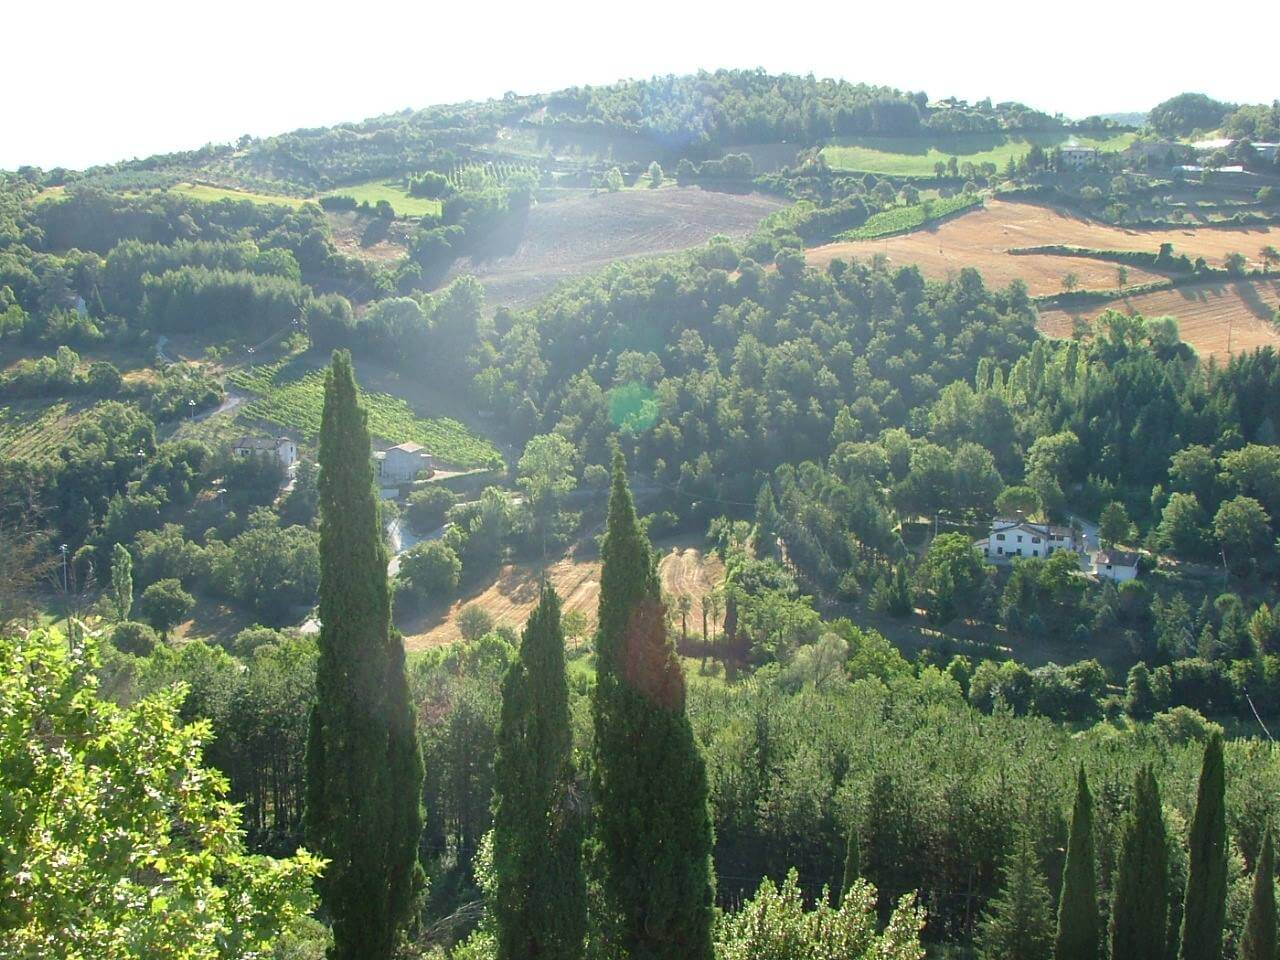 Villa Pia in Lippiano - picturesque Italian countryside